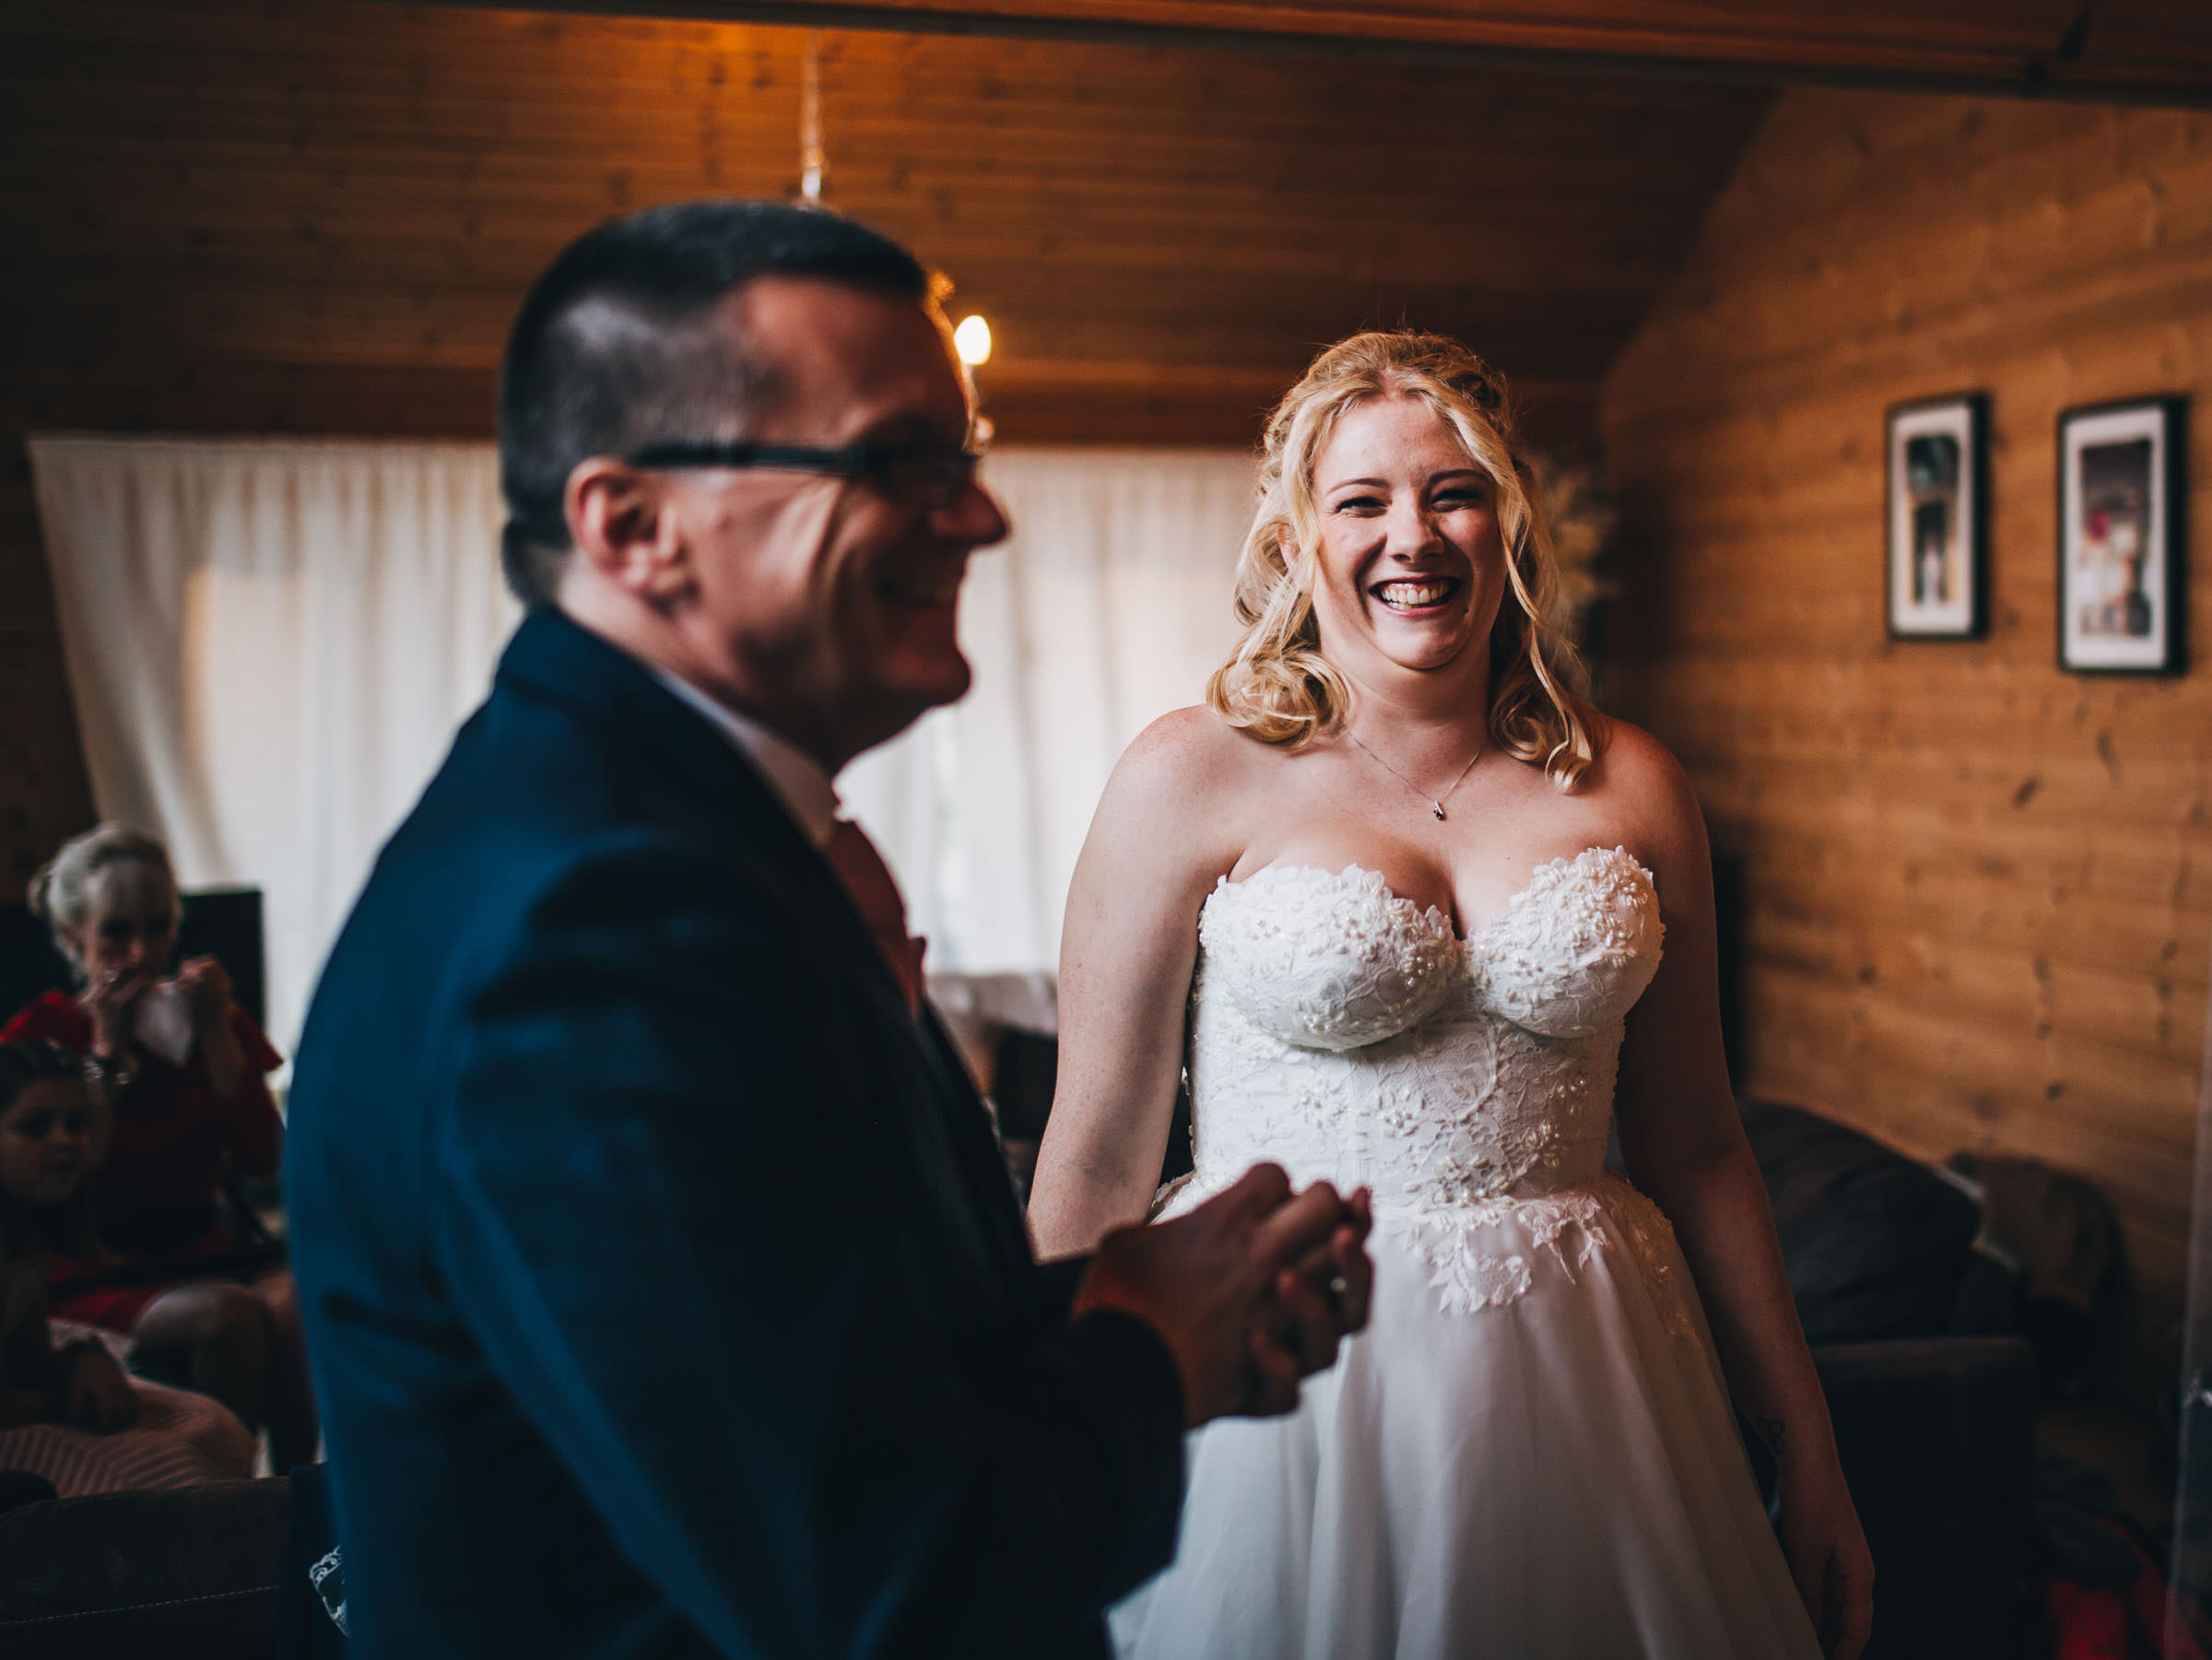 relaxed wedding photography cheshire - bride laughs at dad